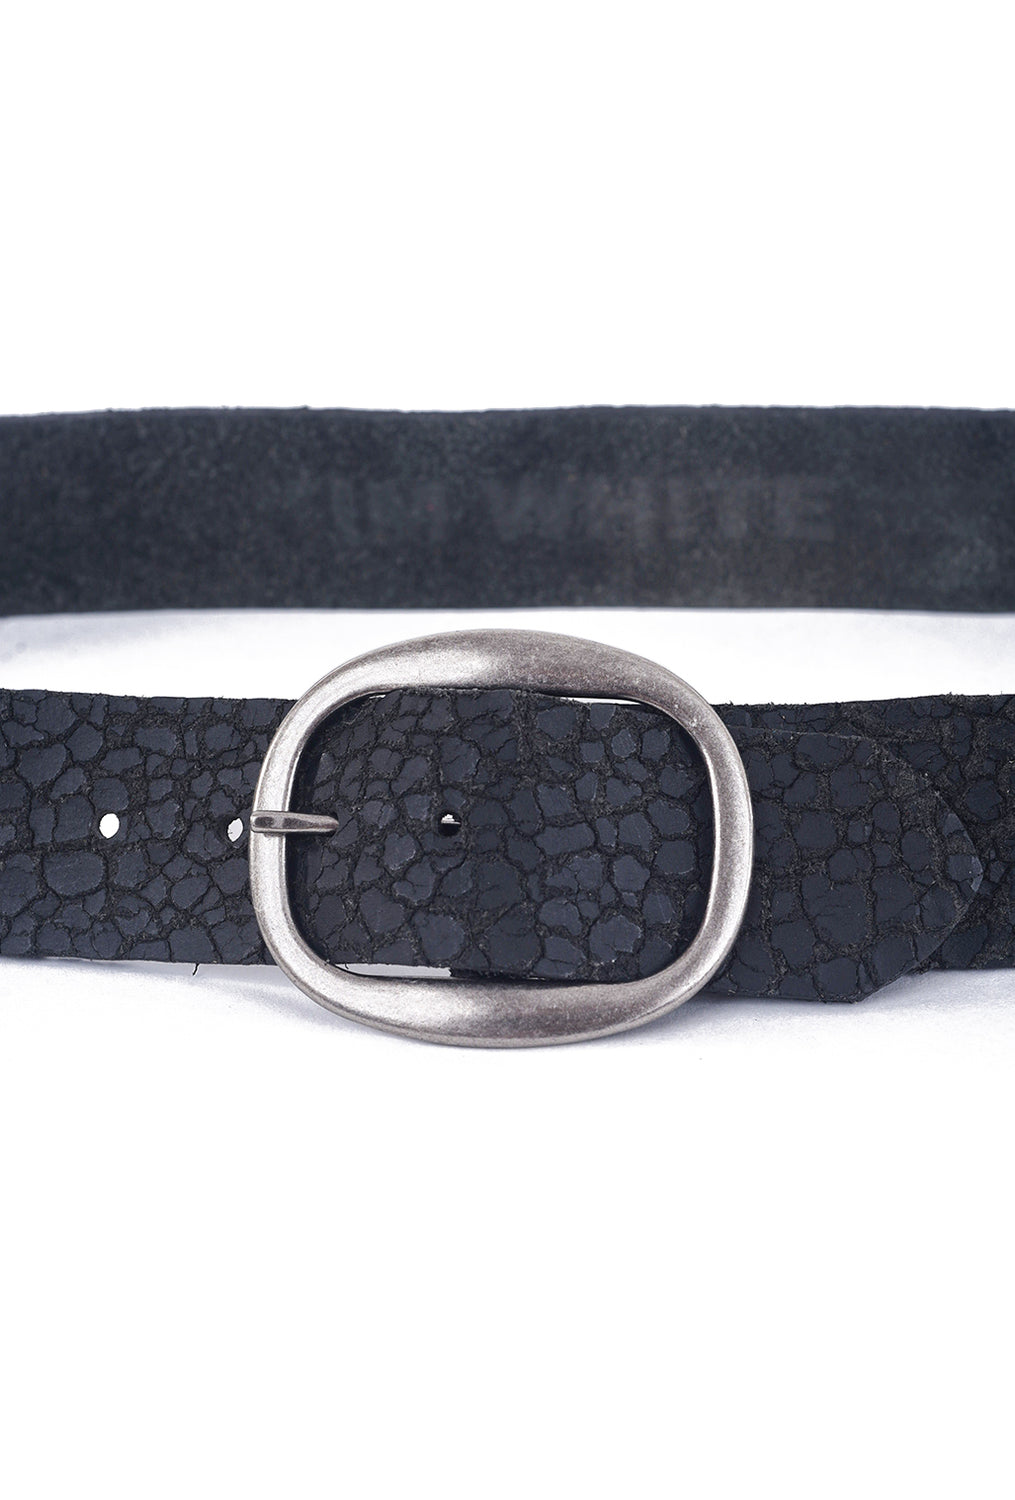 Kim White Heirloom Basic Belt, Black Distressed